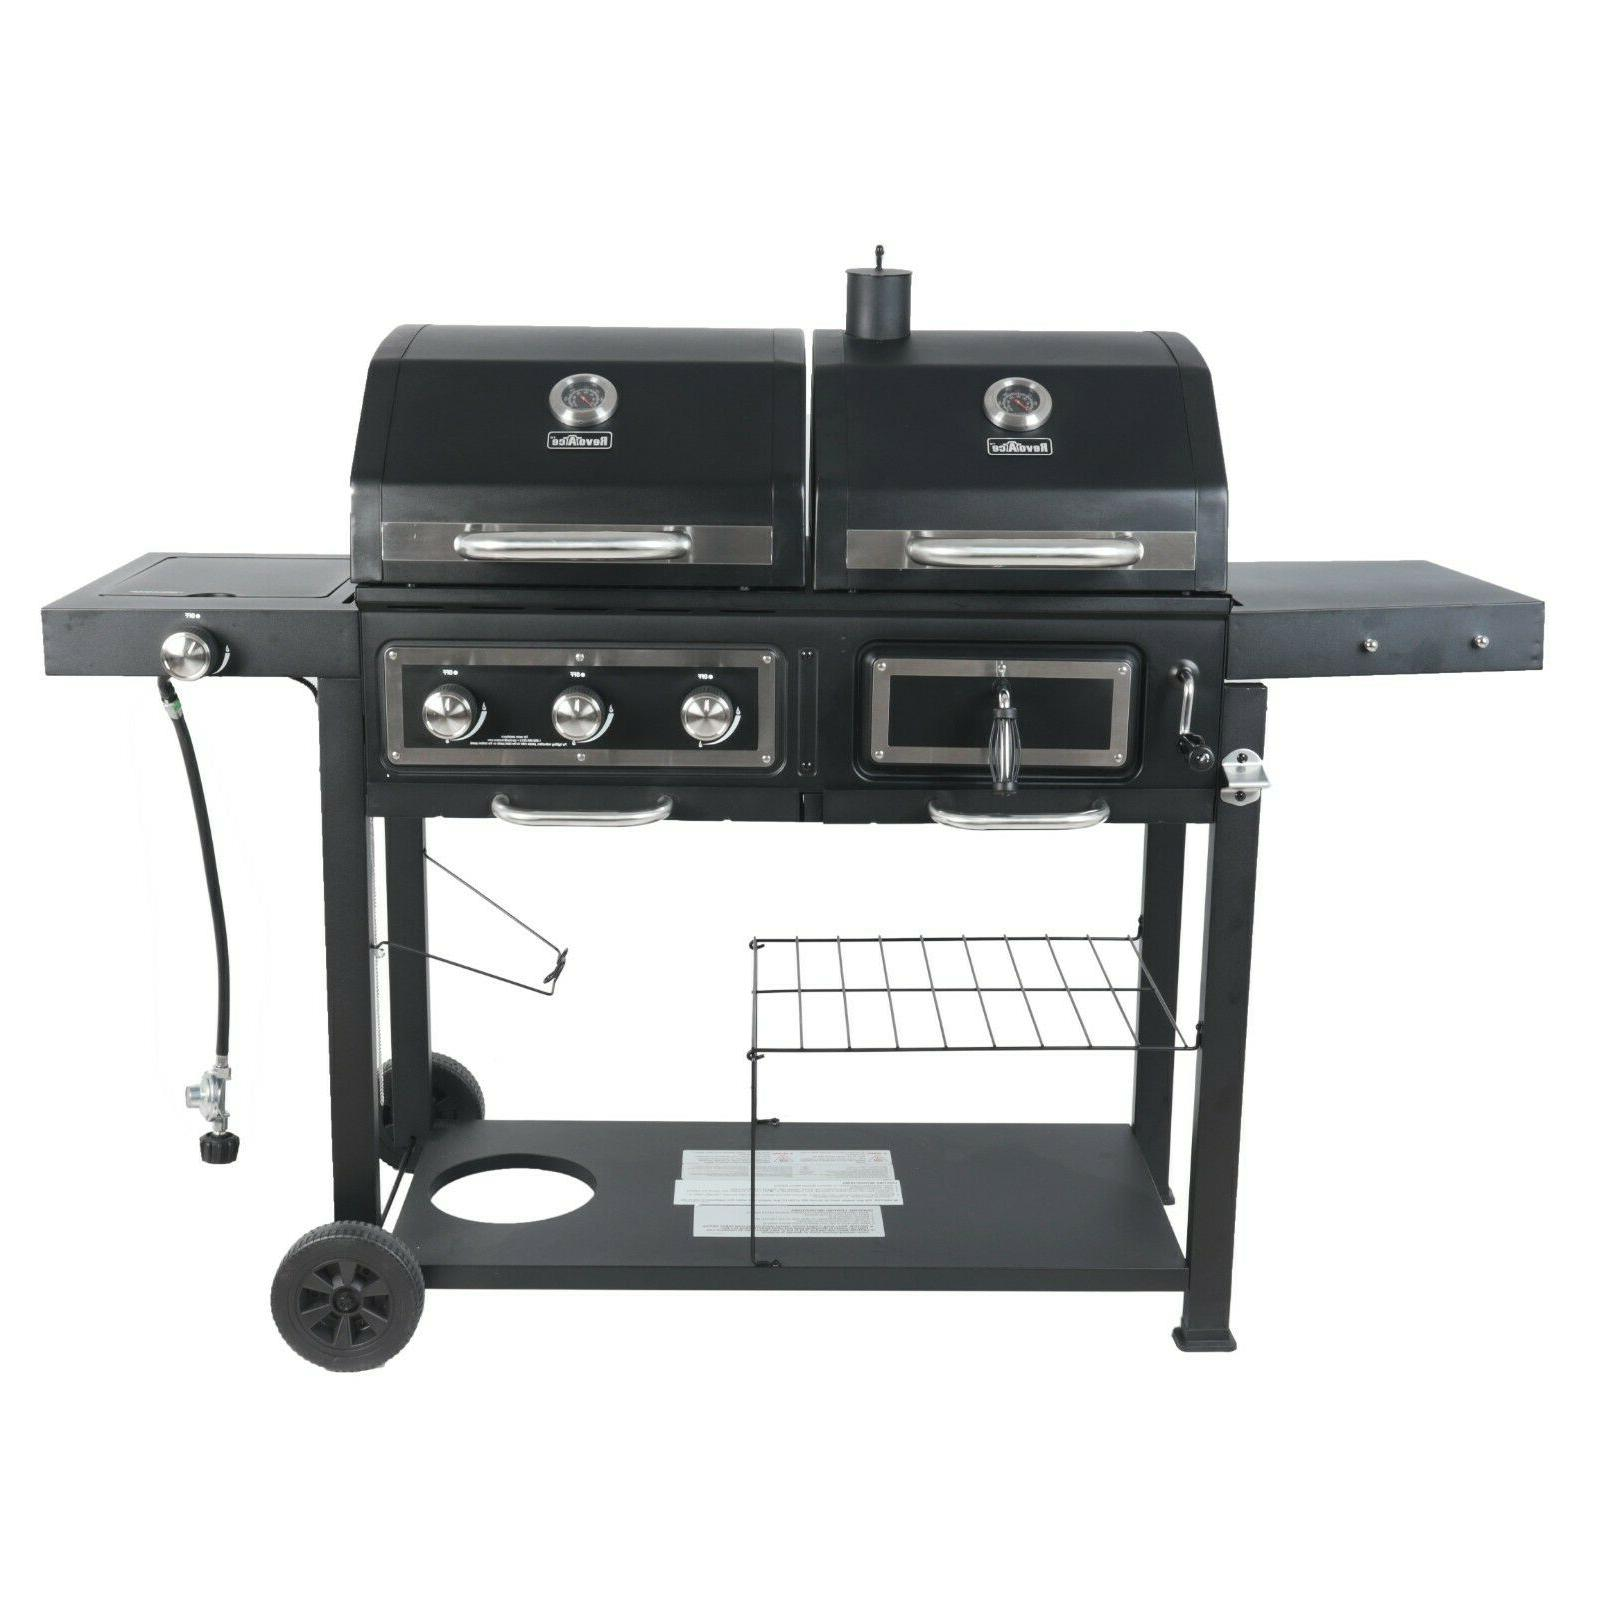 RevoAce Charcoal and Gas Stainless Outdoor BBQ USA